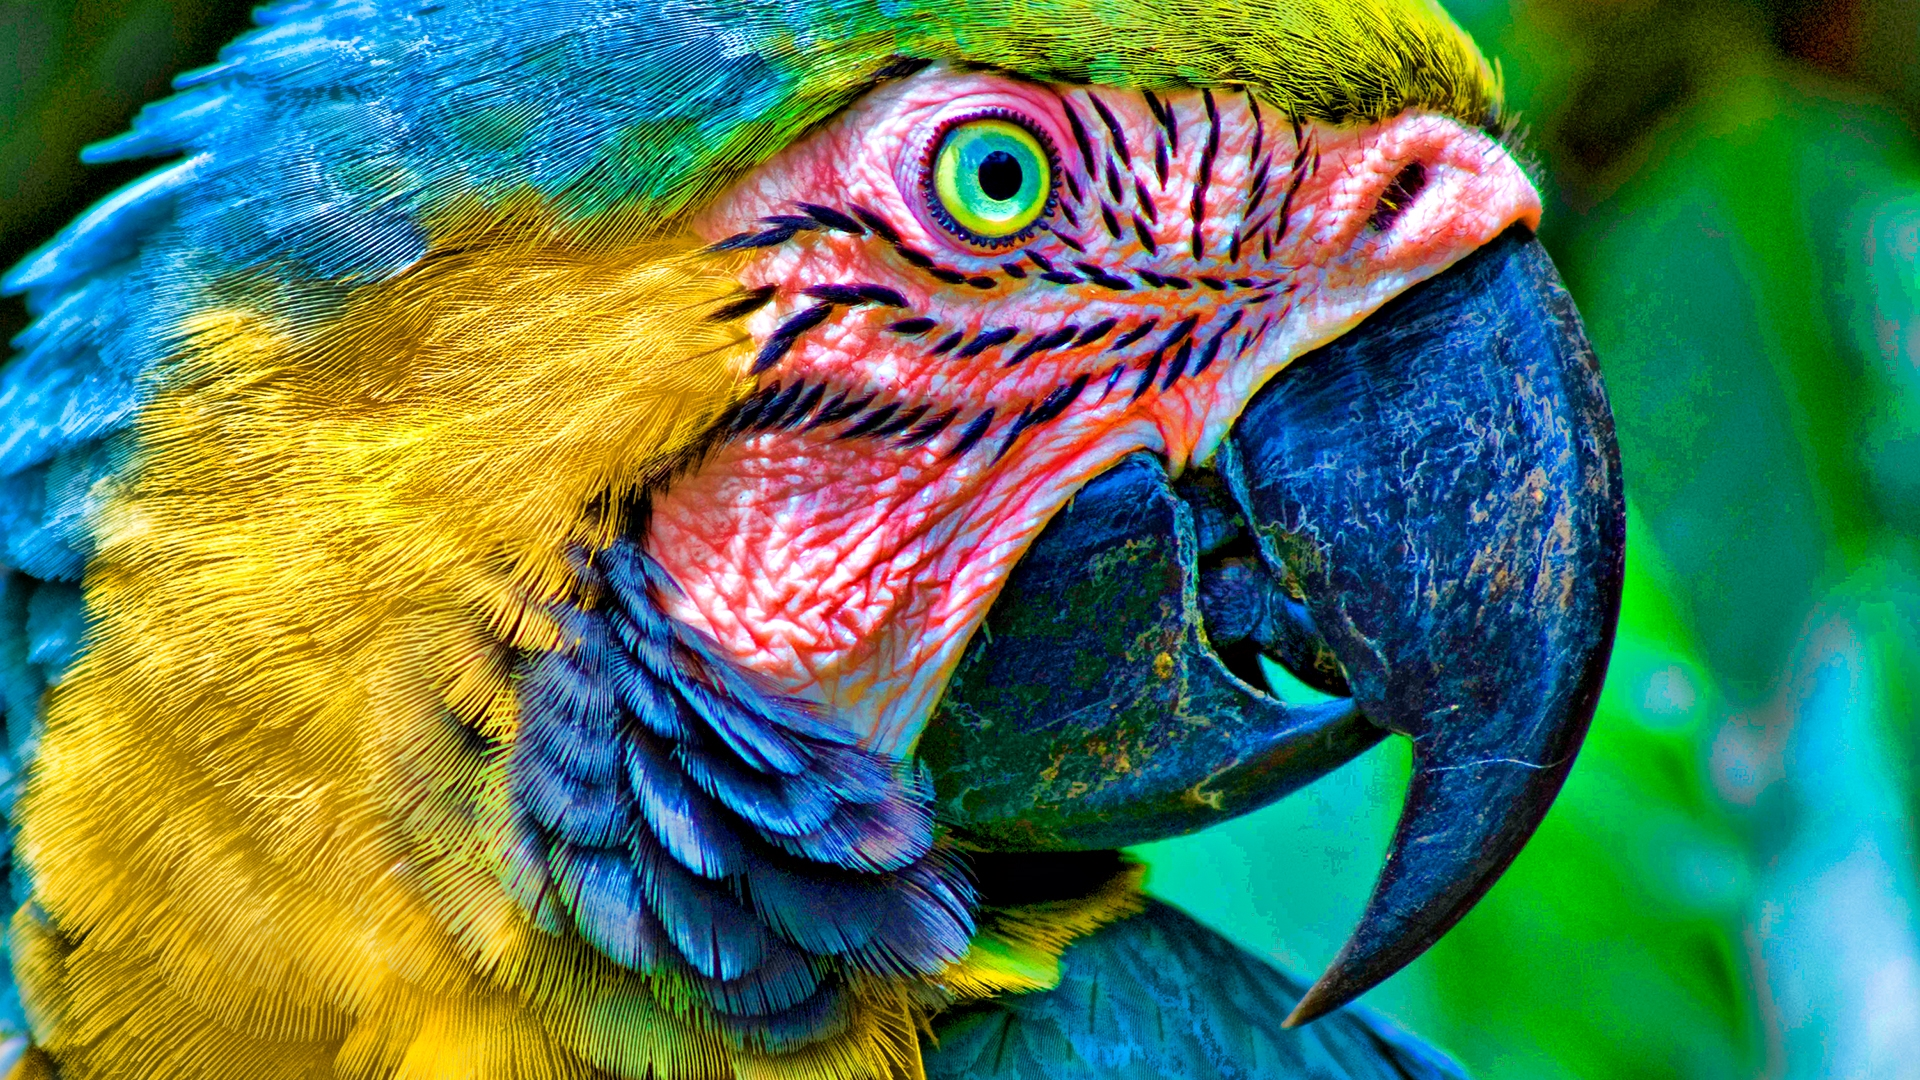 desktop parrot image download - photo #23